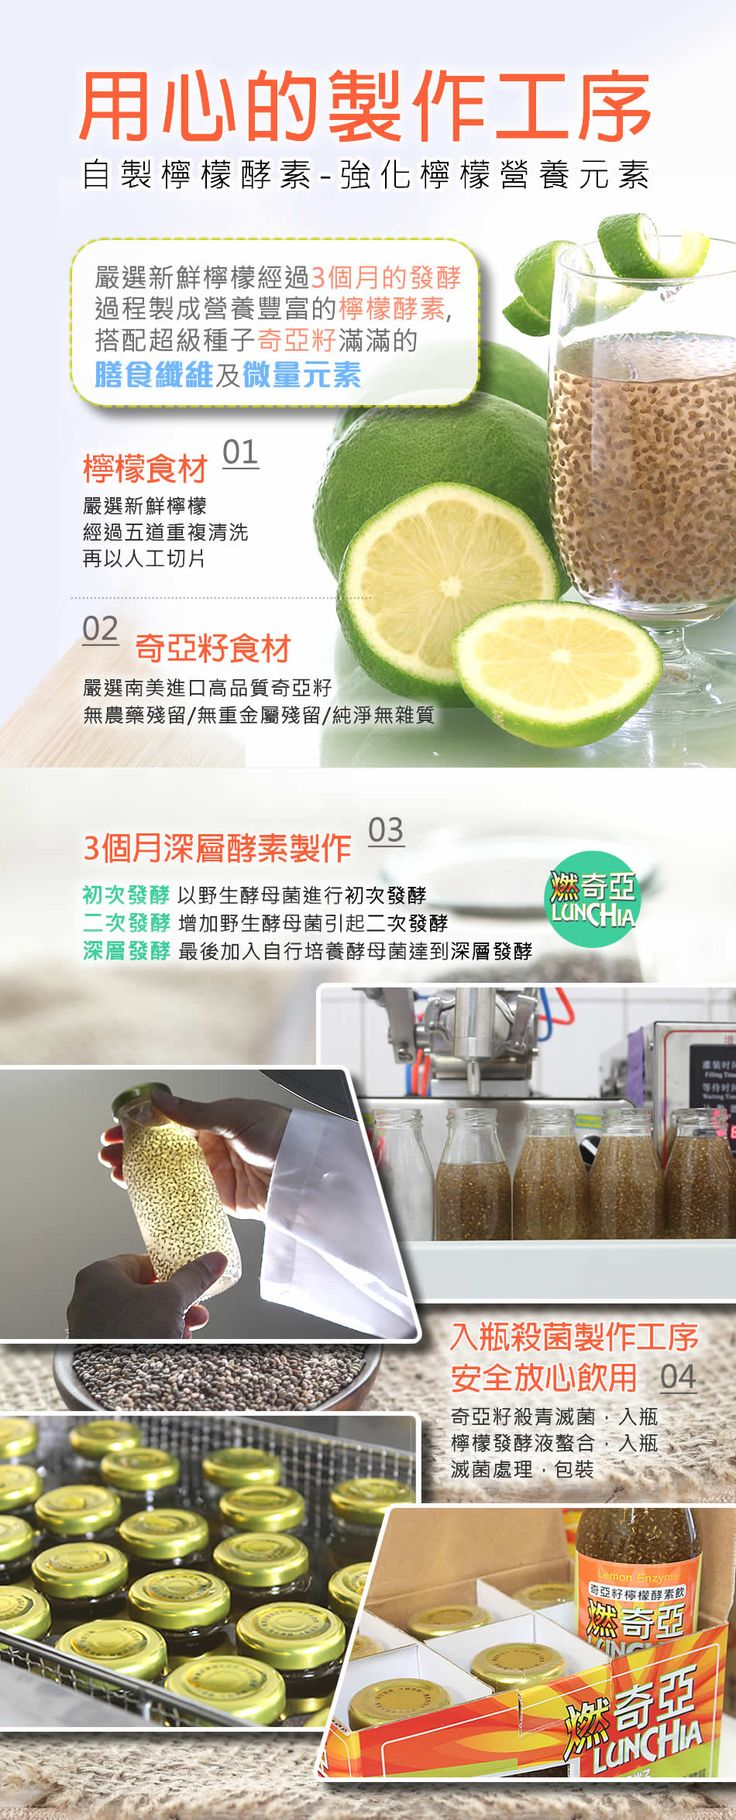 Making of Chia Drink. Mixed Chia drink in Lemon Enzyme. 90 day Fermentation.  燃奇亞 奇亞籽 檸檬酵素 燃奇亞奇亞籽檸檬酵素飲